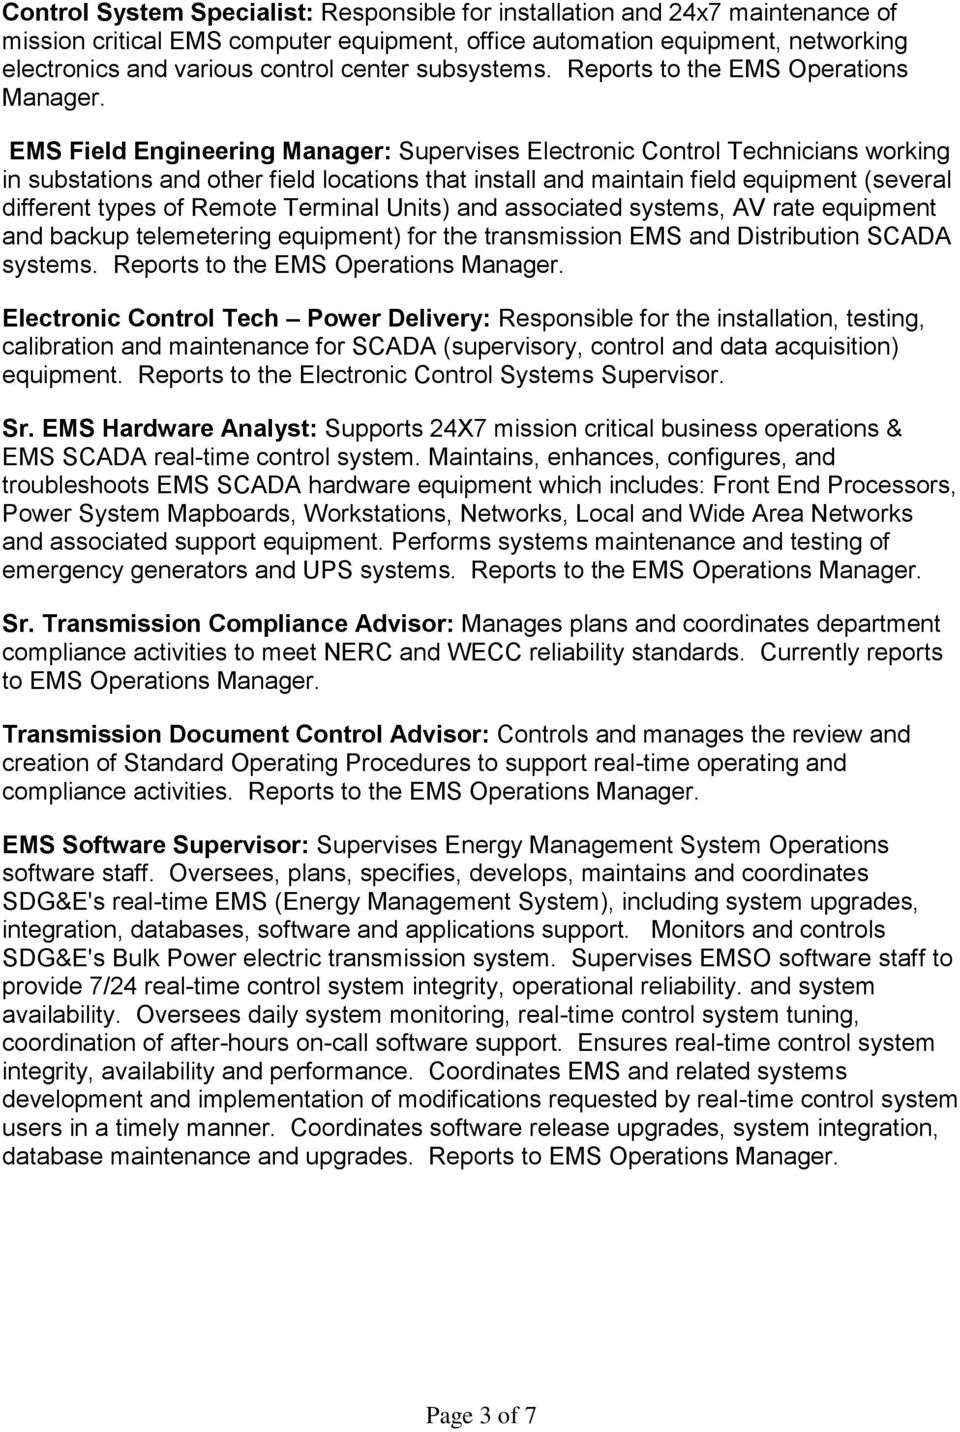 EMS Field Engineering Manager: Supervises Electronic Control Technicians working in substations and other field locations that install and maintain field equipment (several different types of Remote